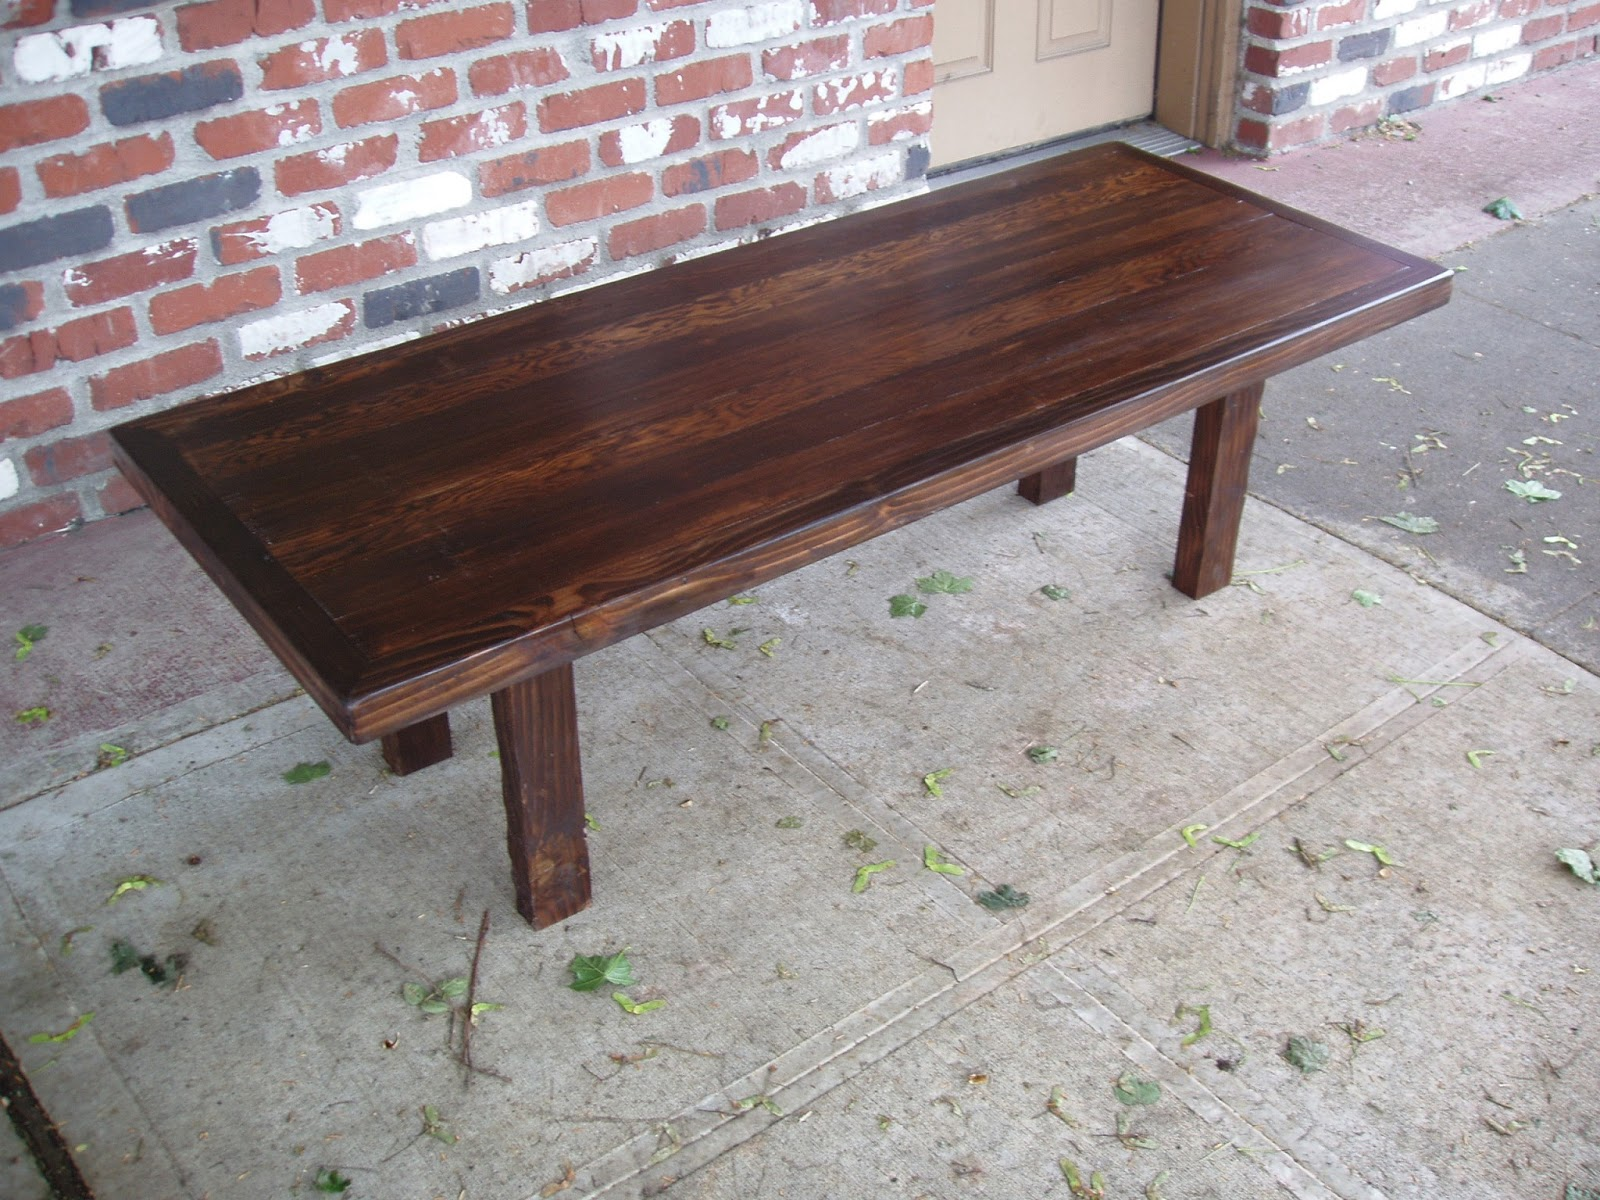 driftedge woodworking Reclaimed Doug Fir and Spruce Coffee Table